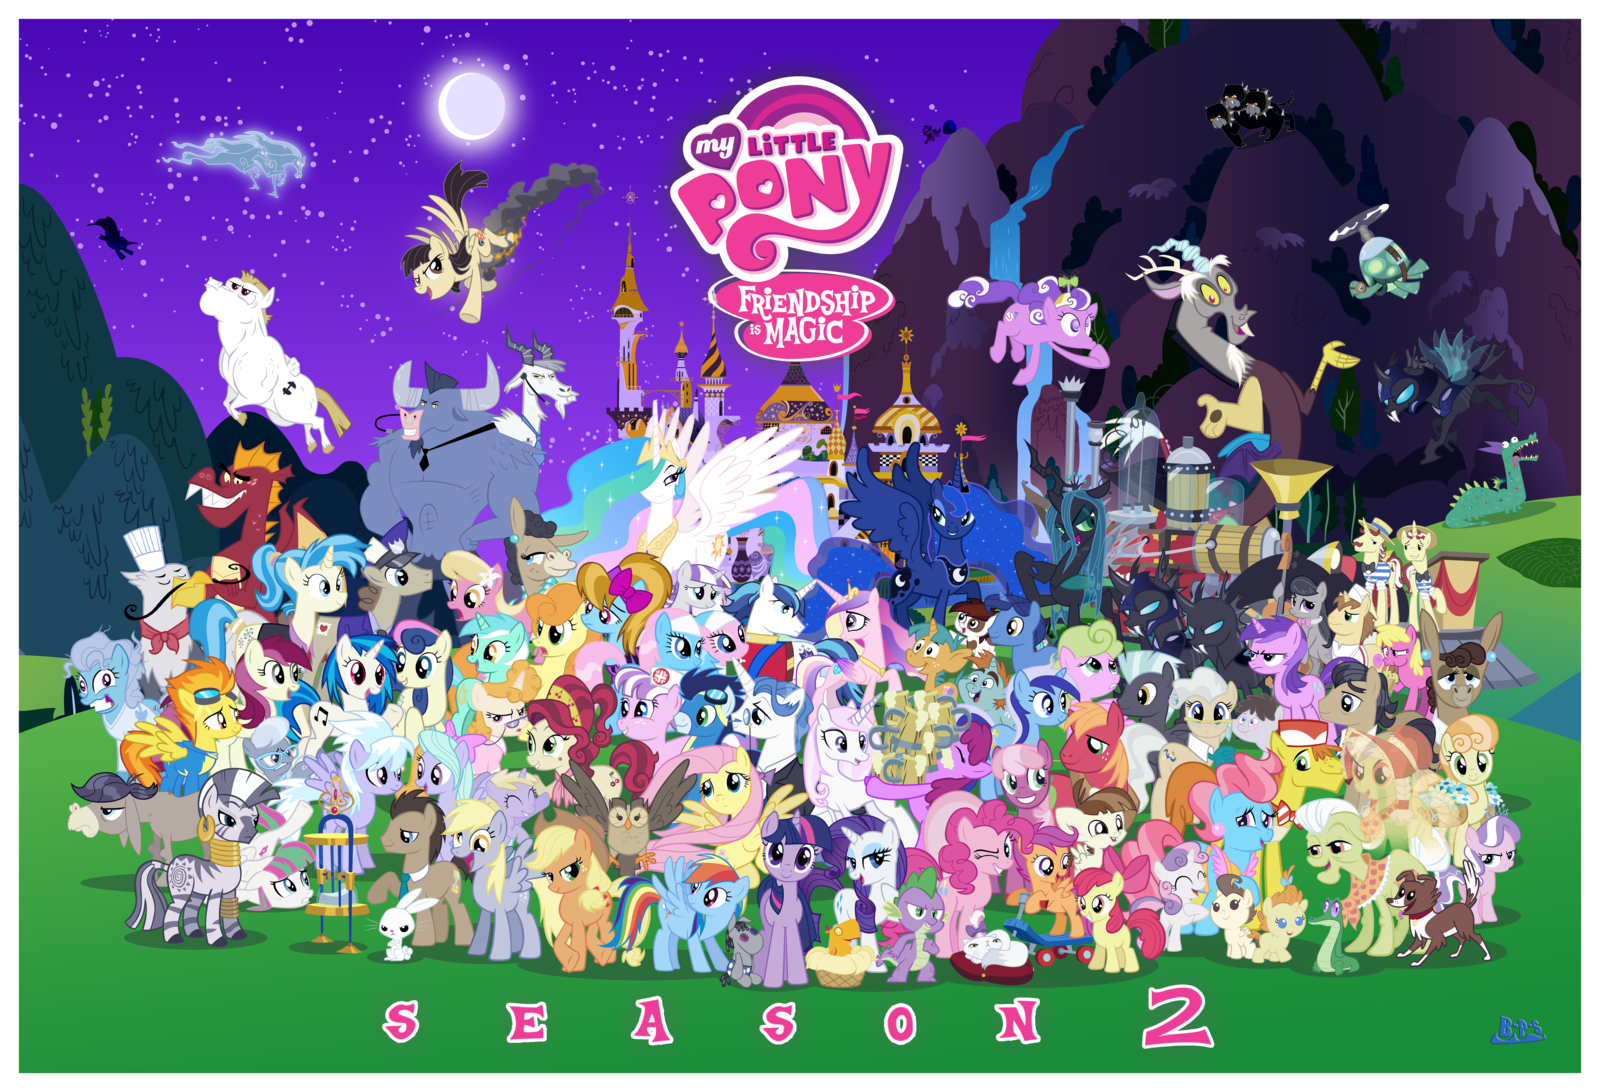 Free Download My Little Pony Friendship Is Magic Wallpaper Iphone